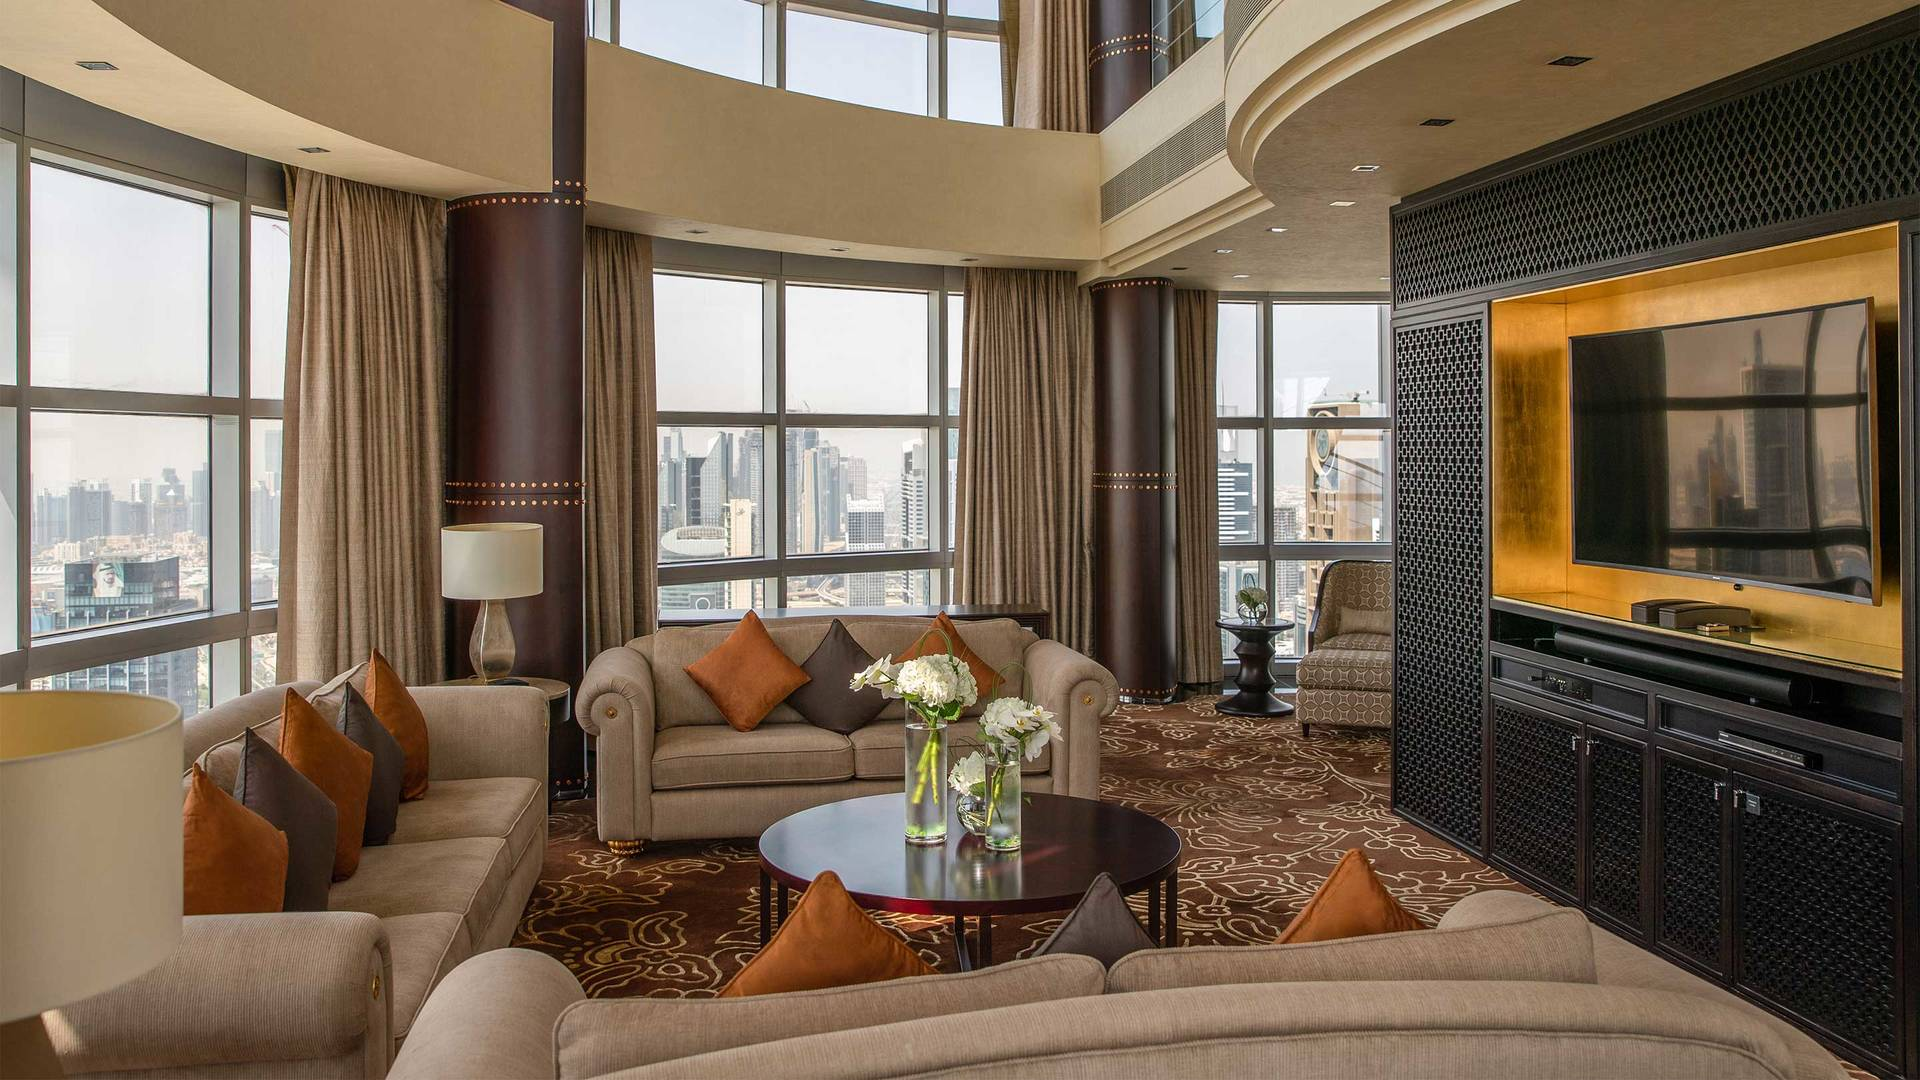 16-9_Jumeirah-Emirates-Towers---Royal-Suite---Living-Room-2